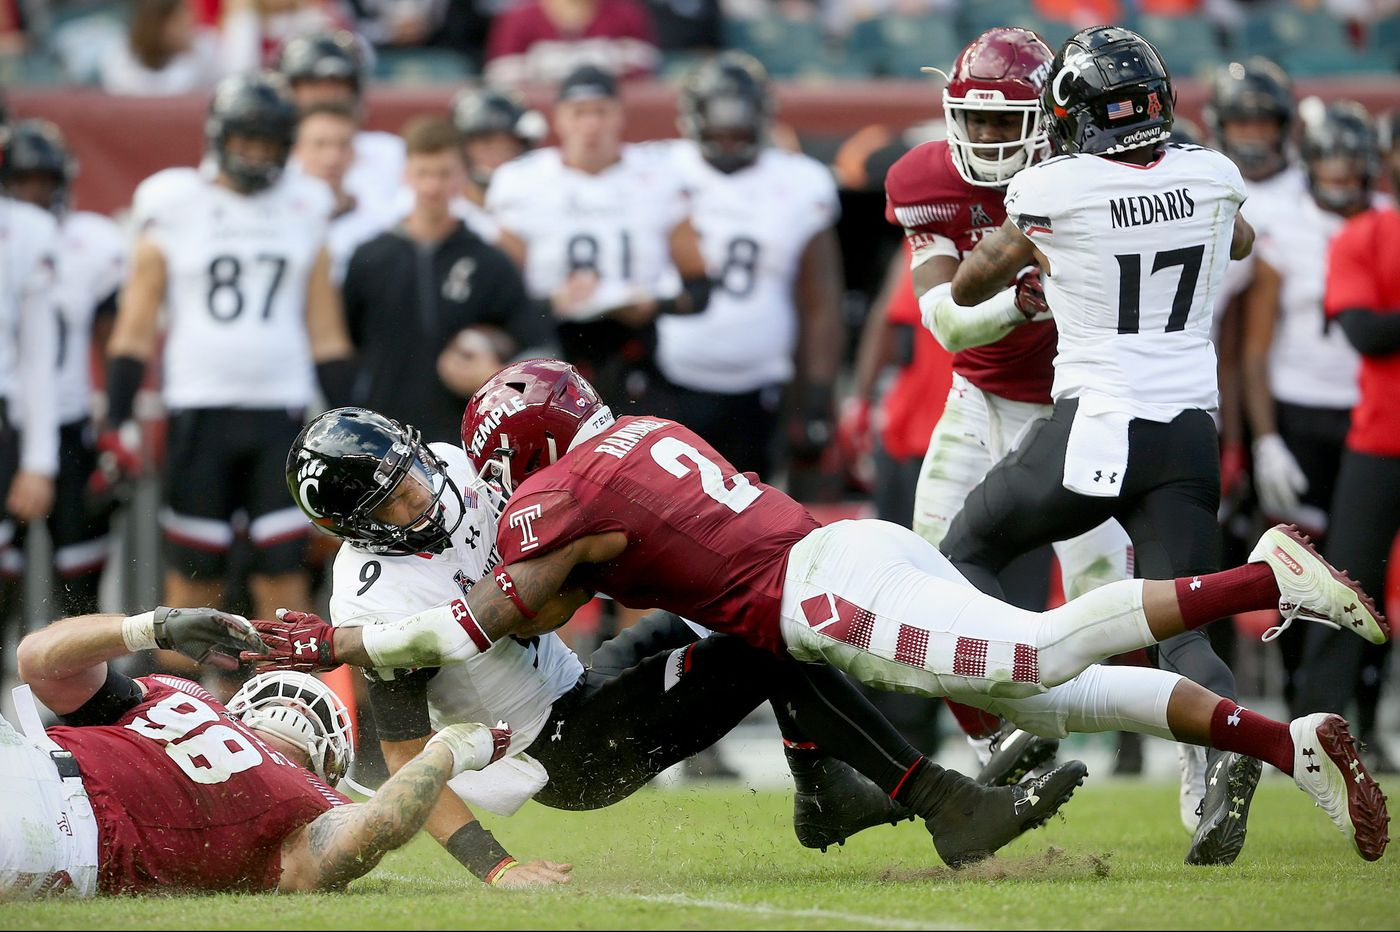 Temple football notes: A bittersweet farewell for Temple safety Delvon Randall